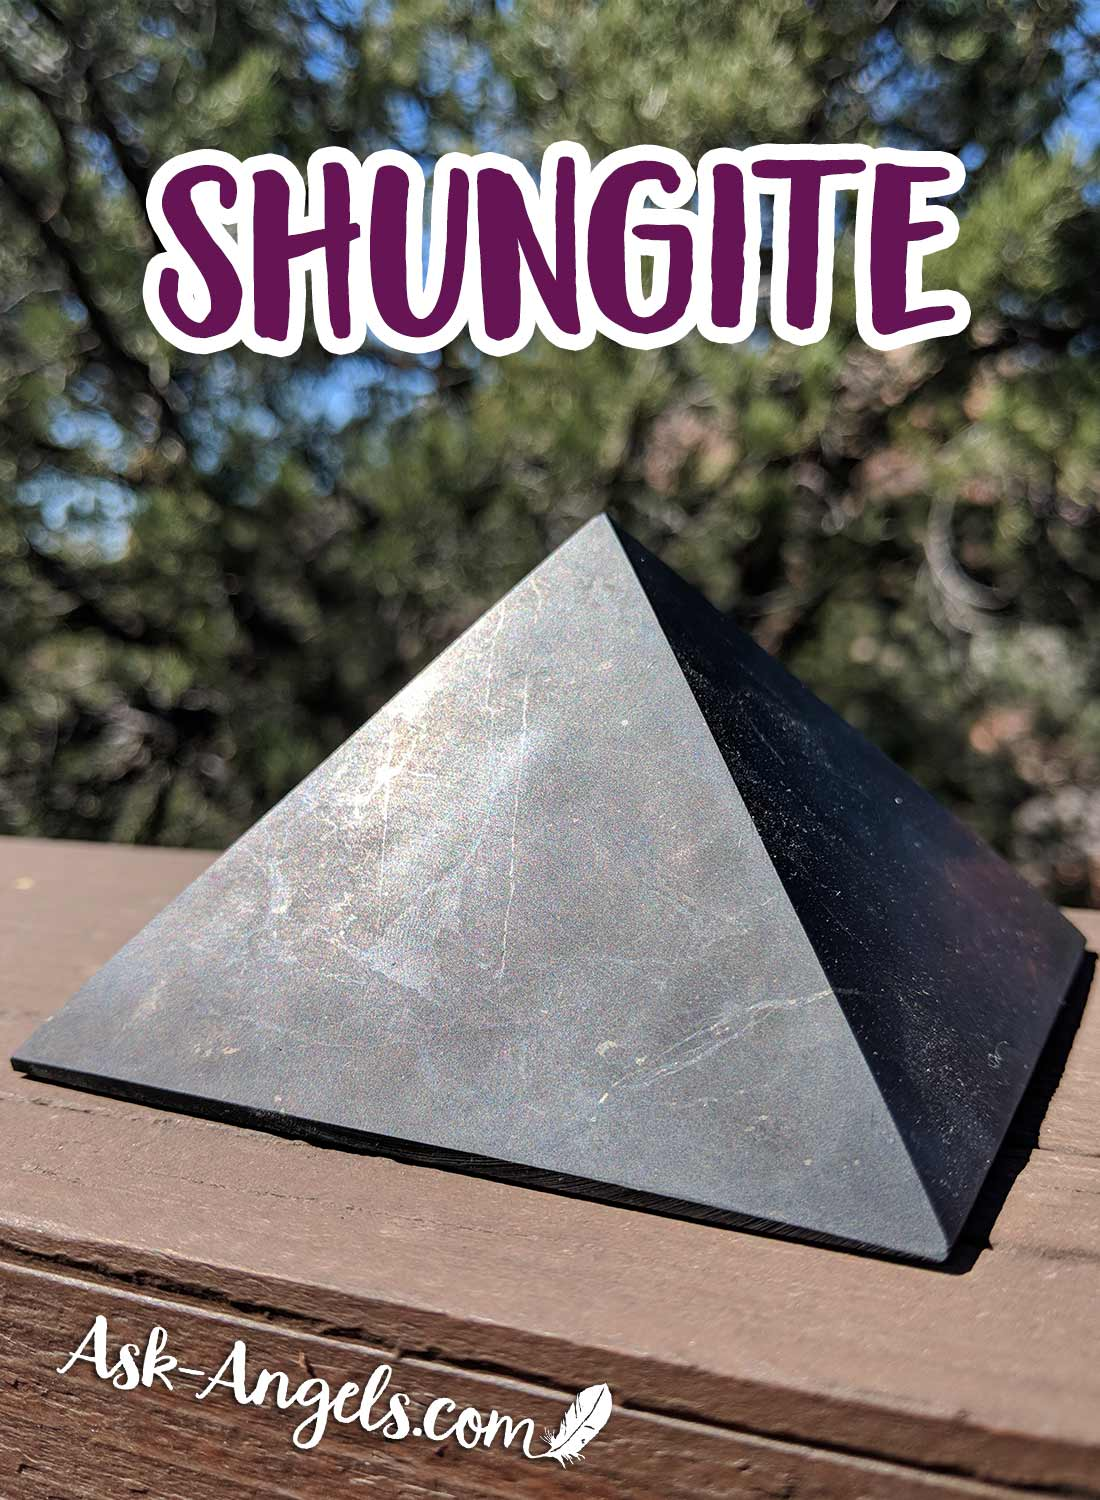 Shungite- Crystals for Protection